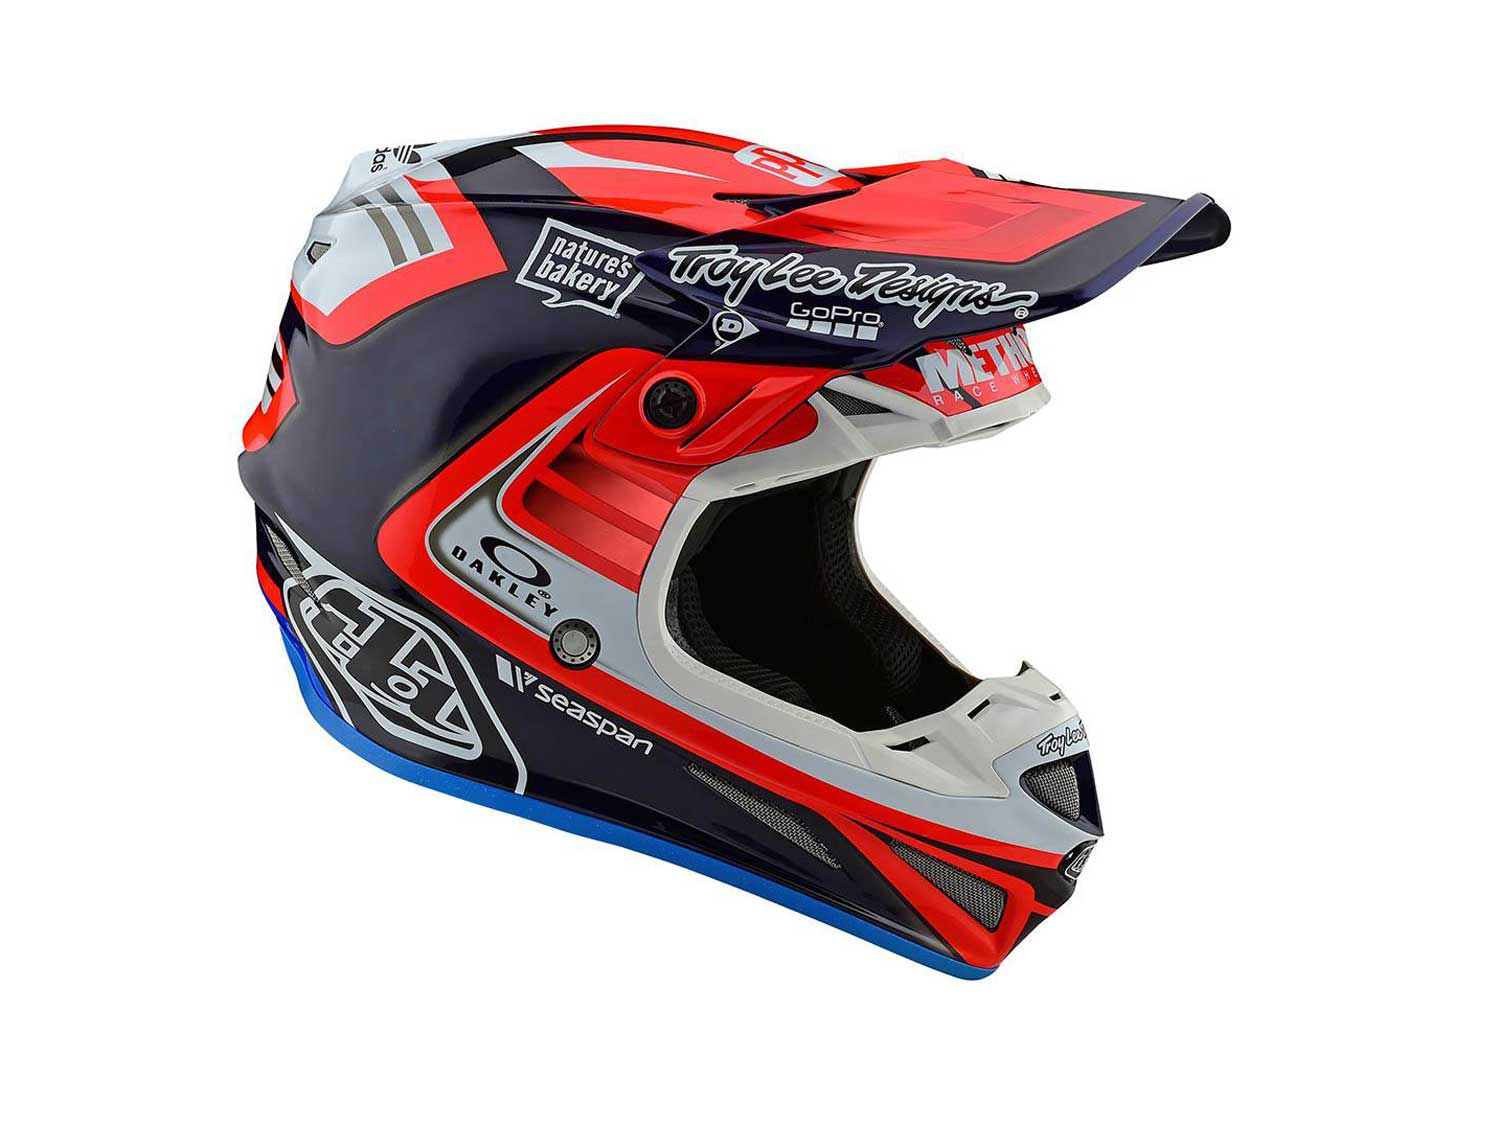 Unsurprisingly, the entire Troy Lee Designs/Red Bull/KTM team wears SE4 Carbon helmets, and the Flash Team design in blue/red (pictured) features many of the factory KTM 250 effort's sponsors.